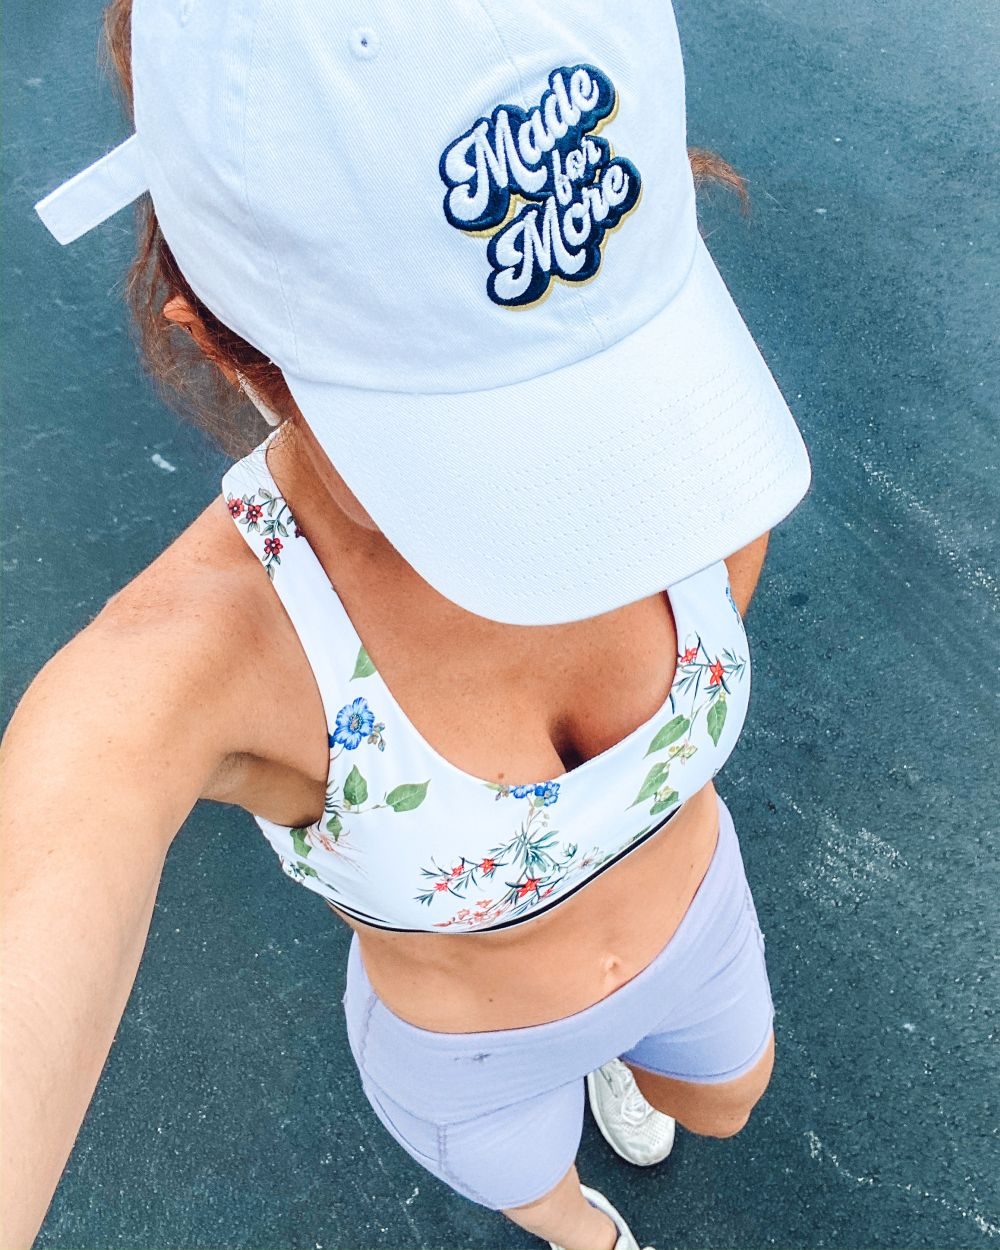 Home Workout Equipment Ideas by popular Florida lifestyle blog, The Modern Savvy: image of a woman wearing a white ball cap, floral bralette, white sneakers, and purple bike shorts.